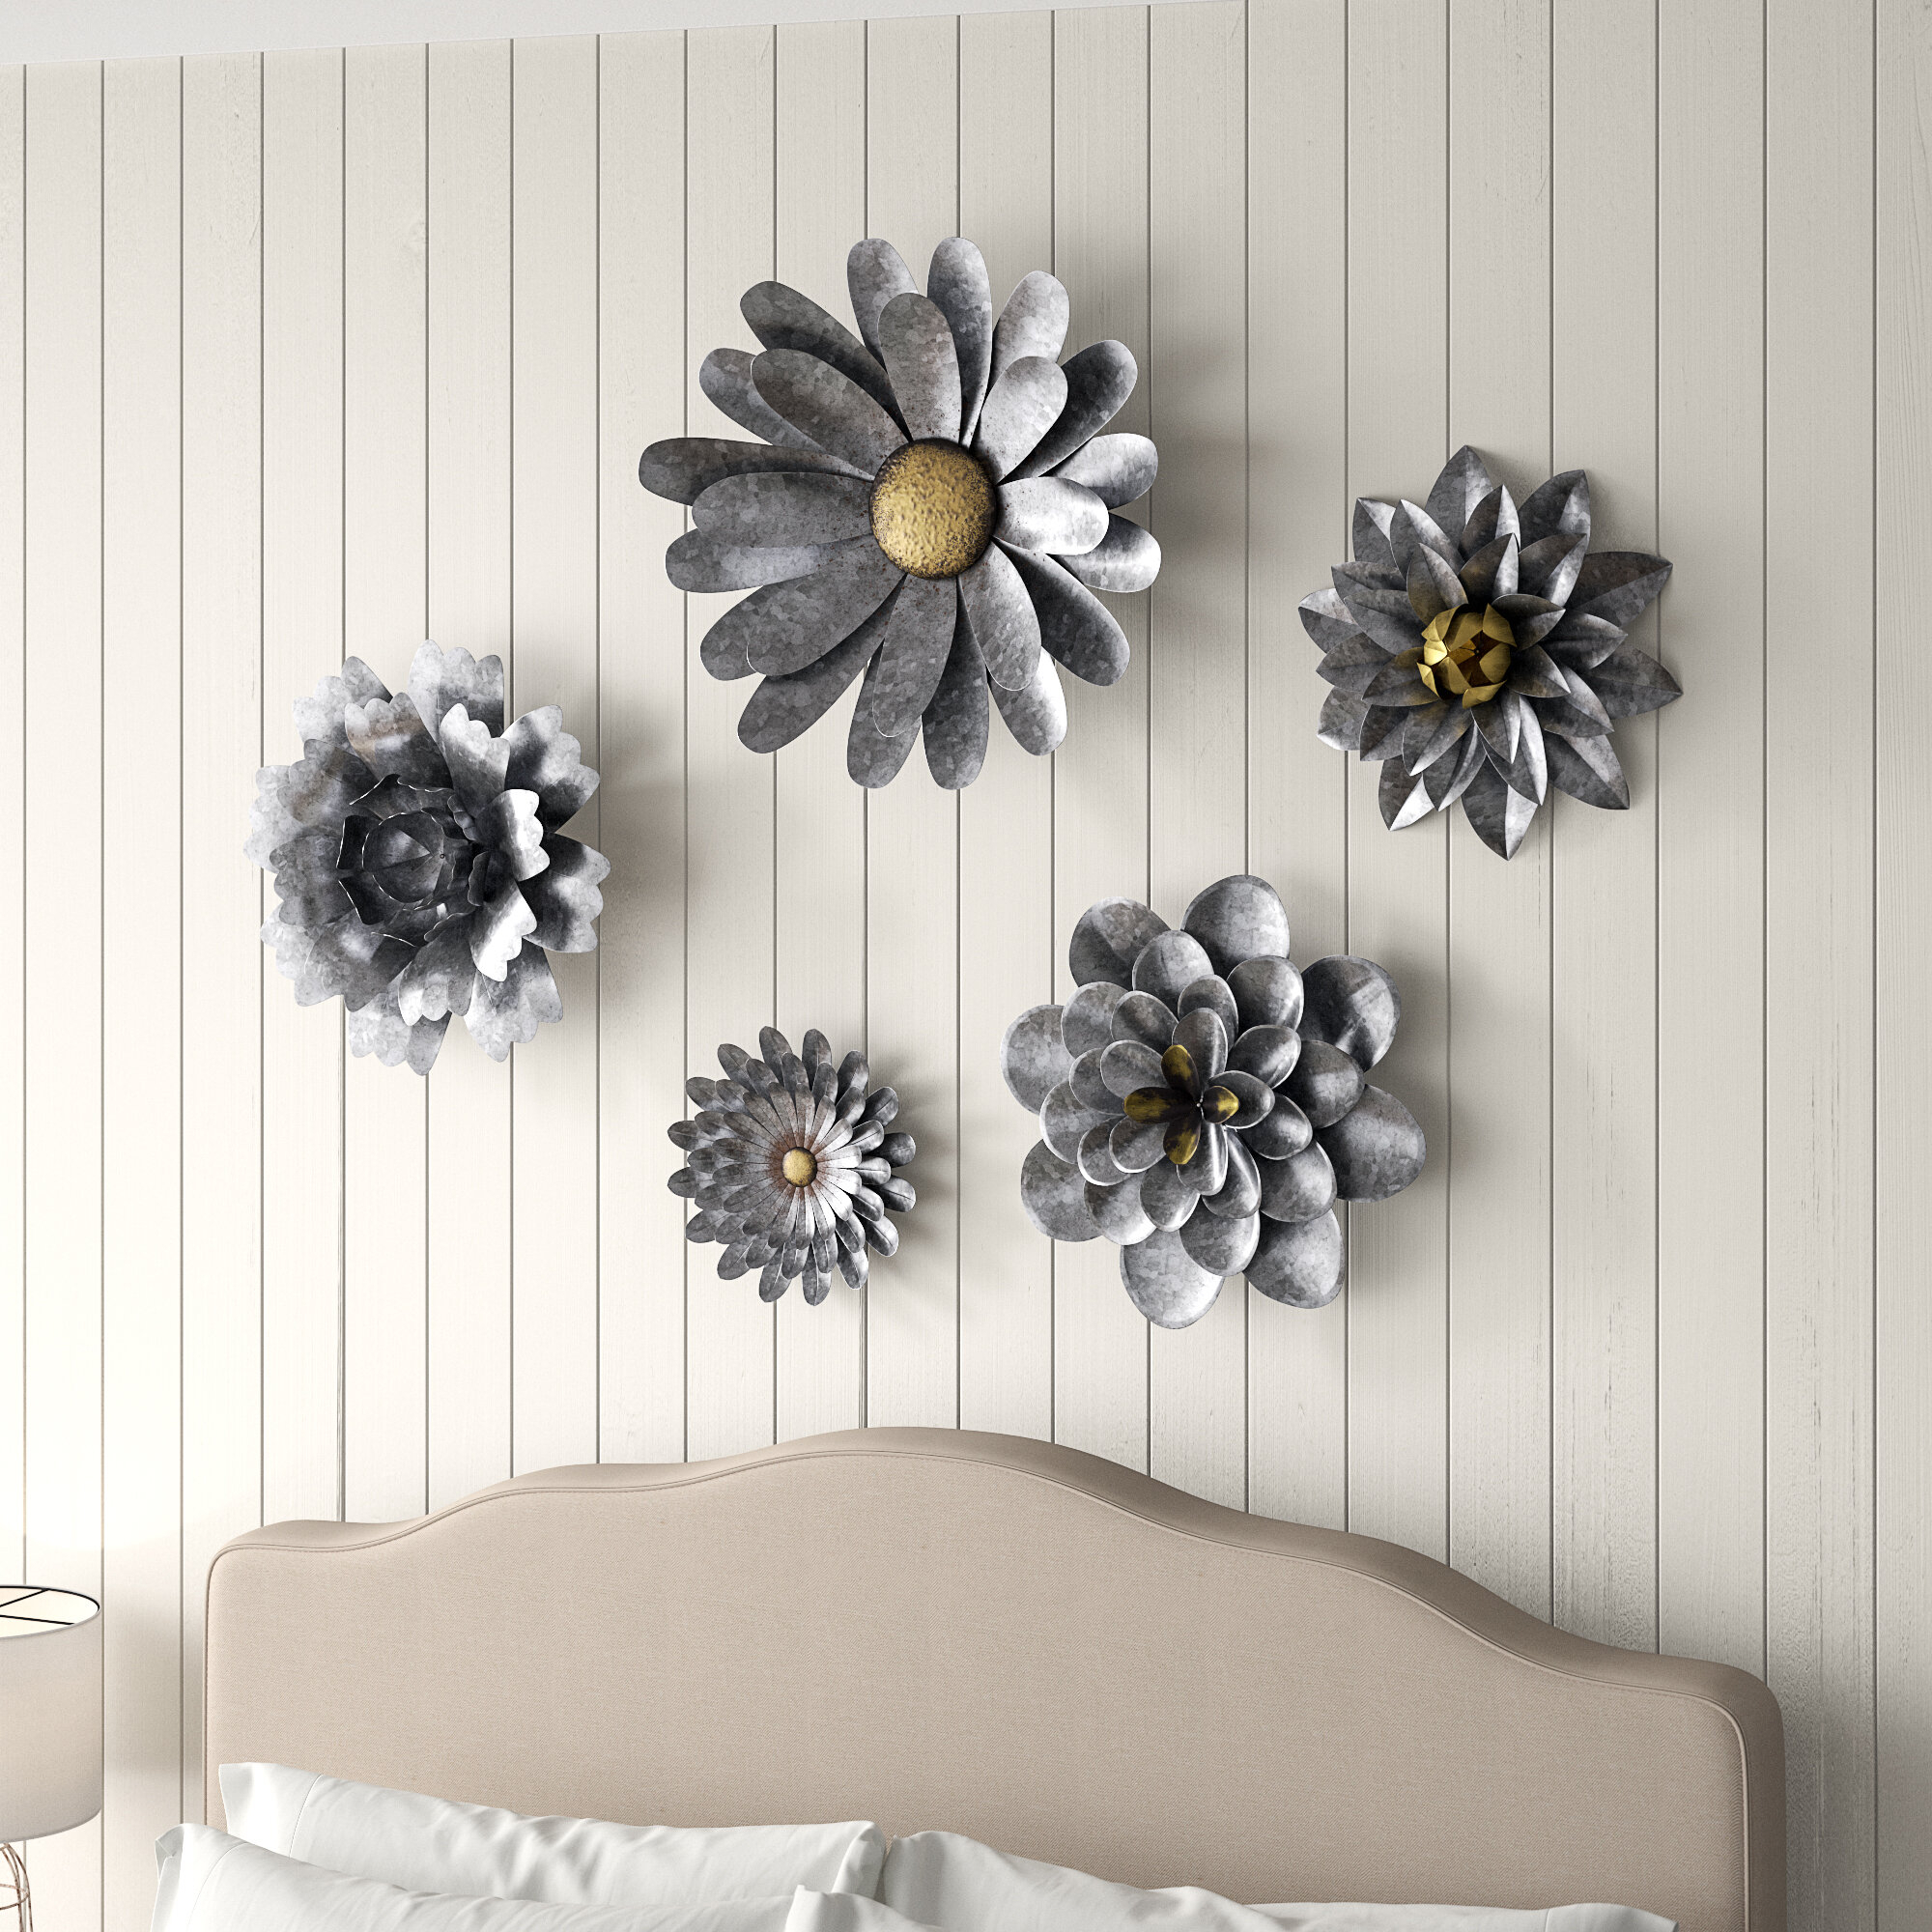 5 Piece Galvanized Metal Flower Hanging Wall Décor Set intended for 3 Piece Ceramic Flowers Wall Decor Sets (Image 12 of 30)